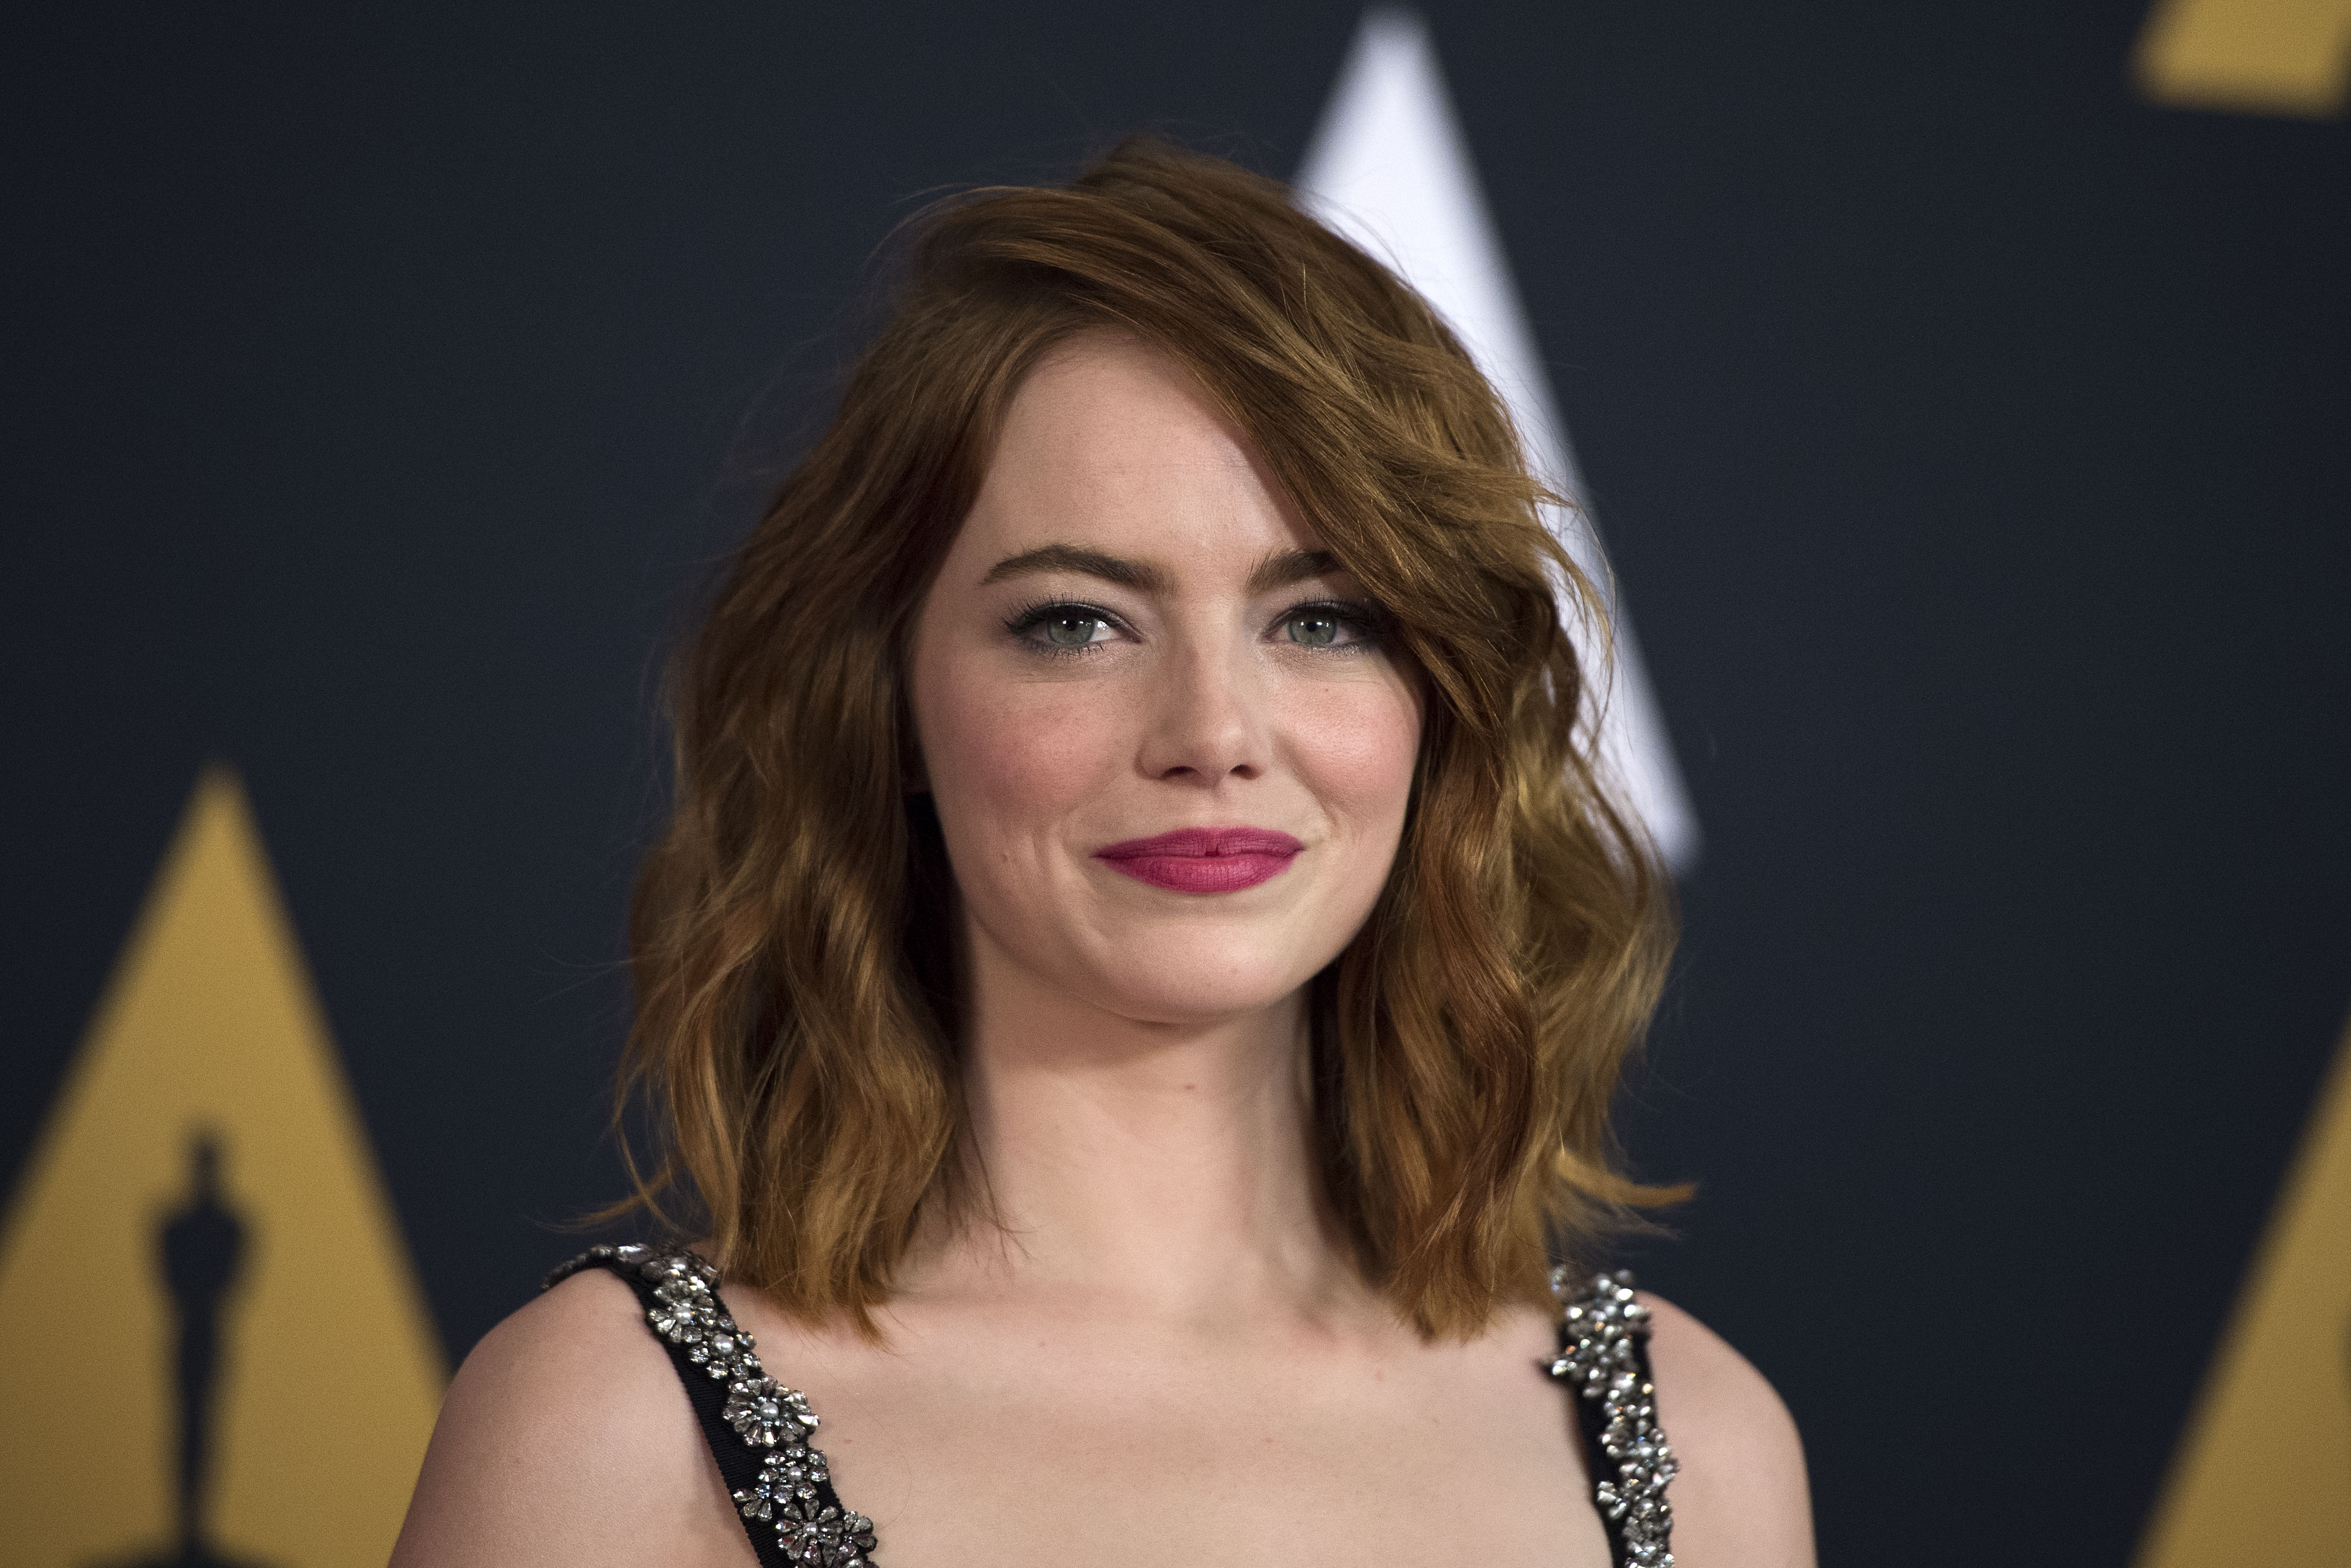 Actress Emma Stone attends the 8th Annual Governors Awards hosted by the Academy of Motion Picture Arts and Sciences on November 12, 2016, at the Hollywood & Highland Center in Hollywood, California.